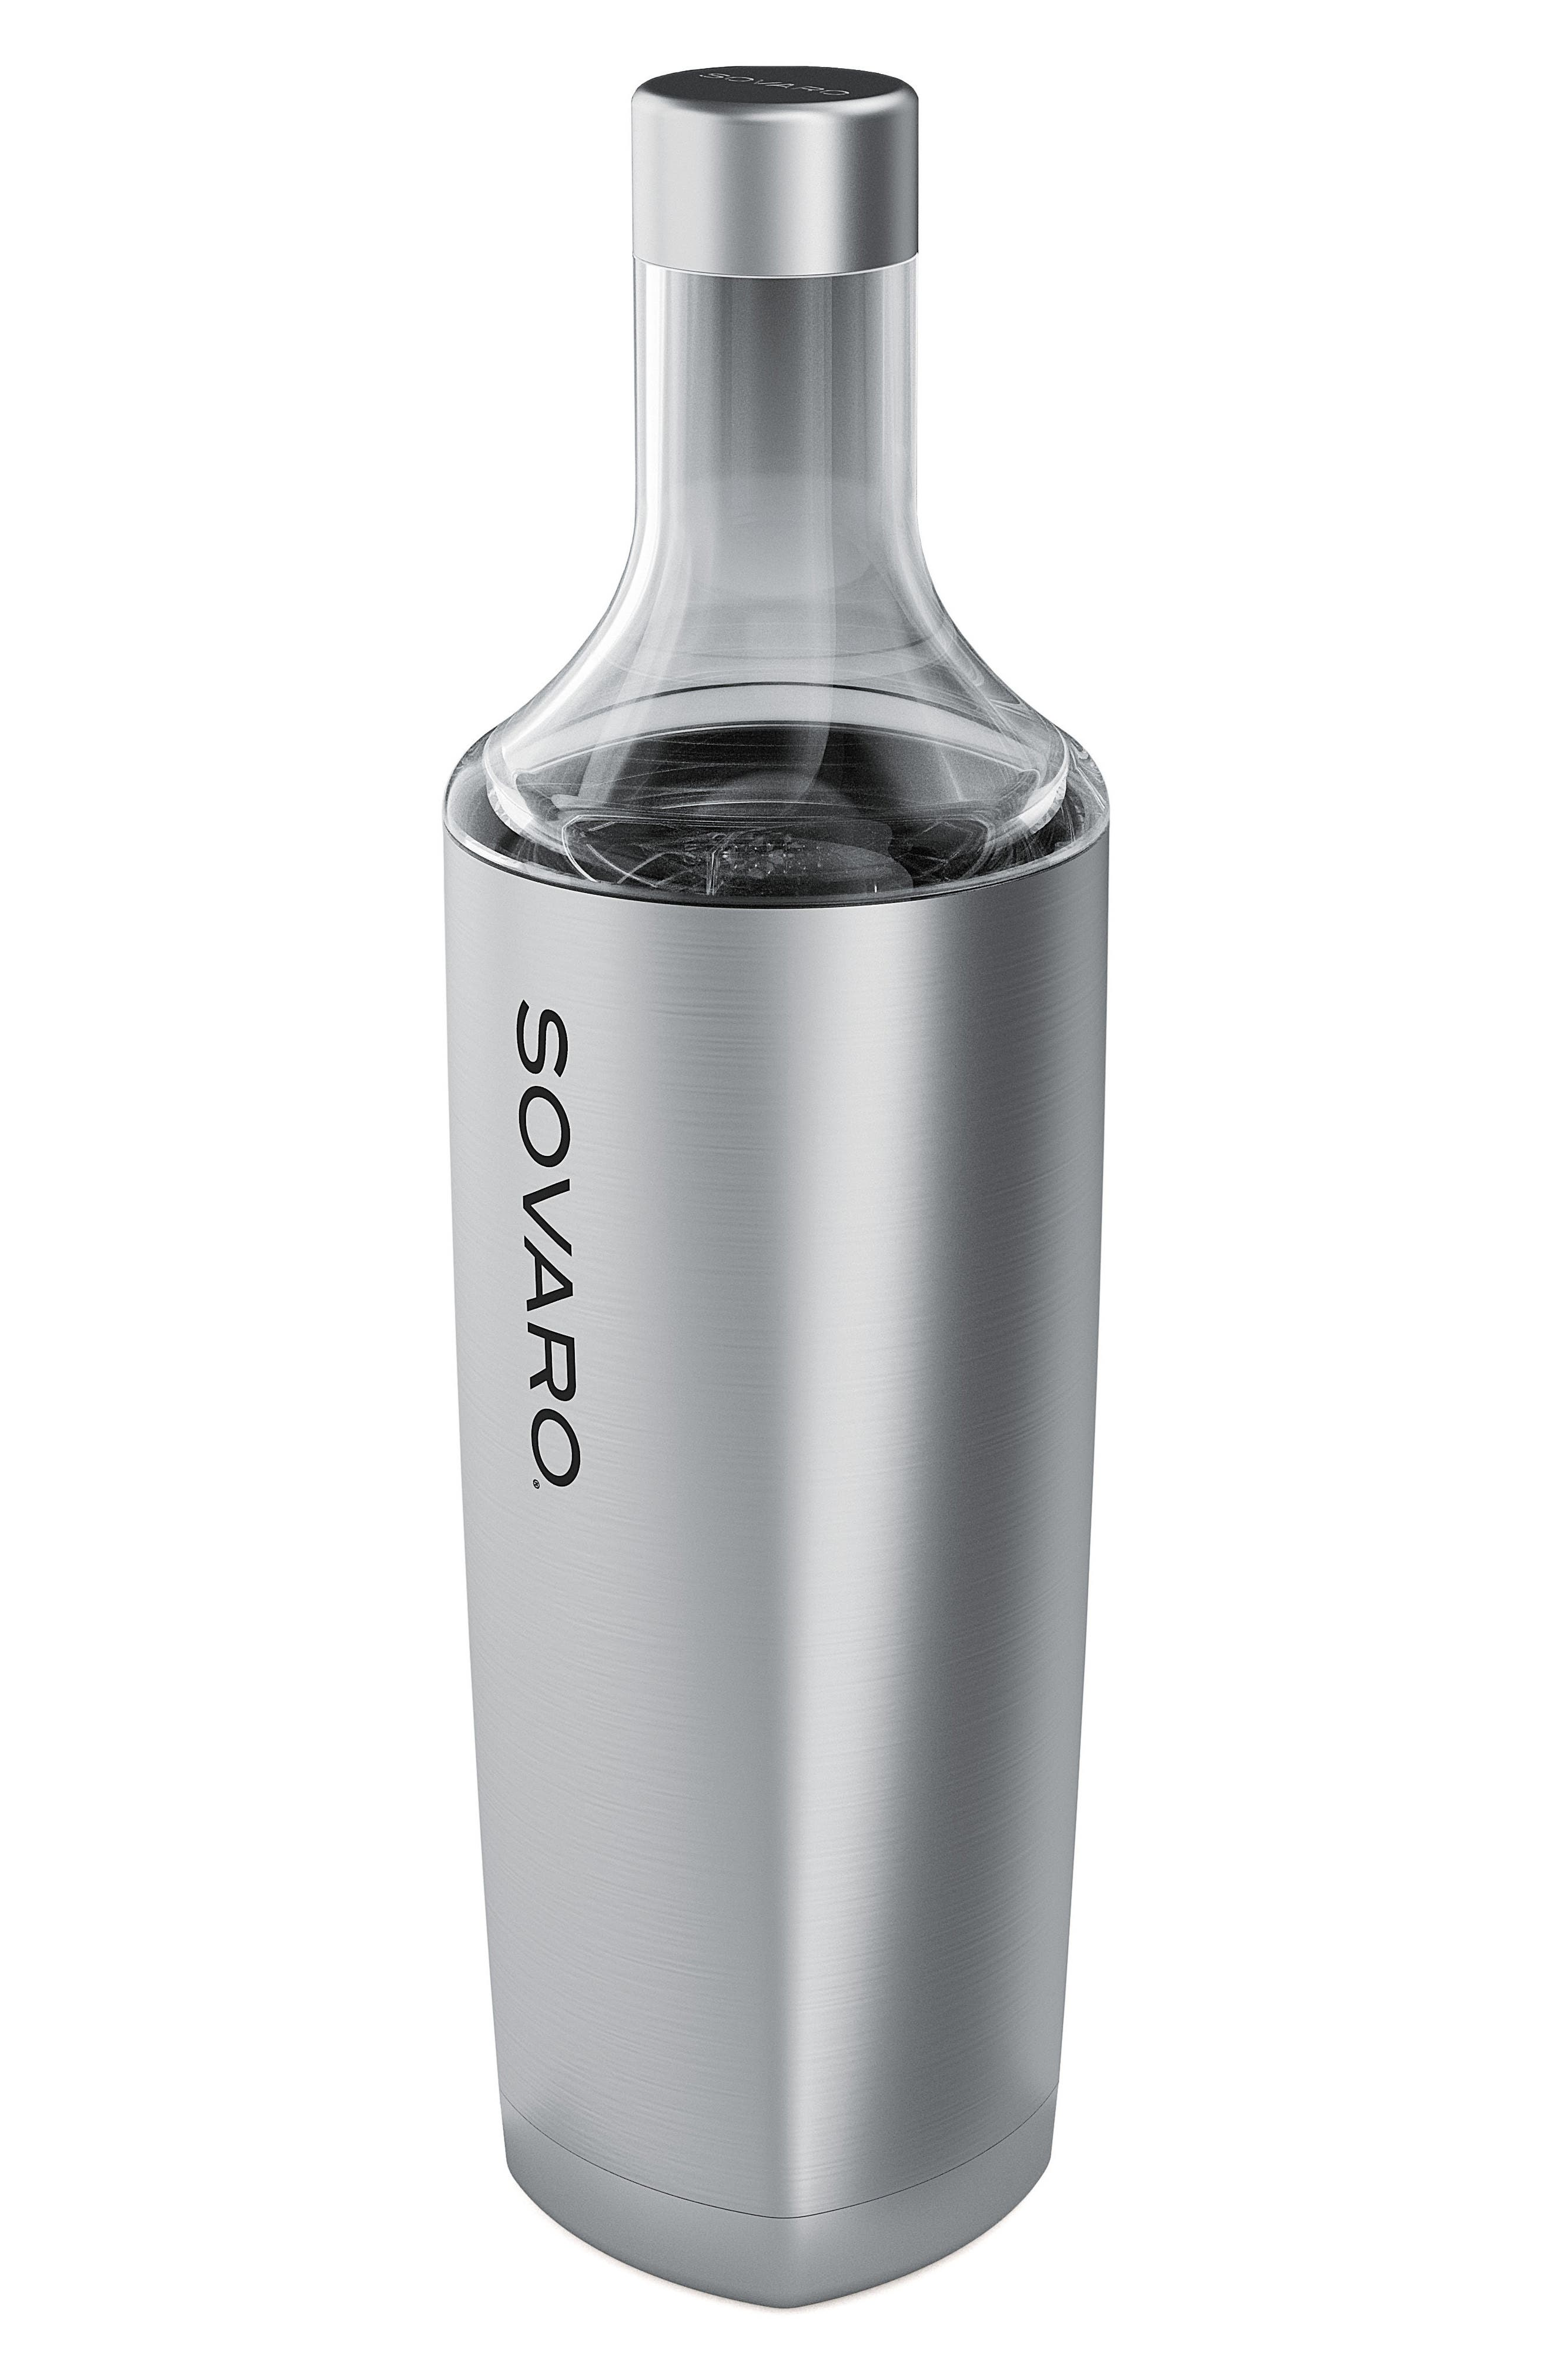 25-Ounce Insulated Beverage Bottle,                         Main,                         color, Stainless